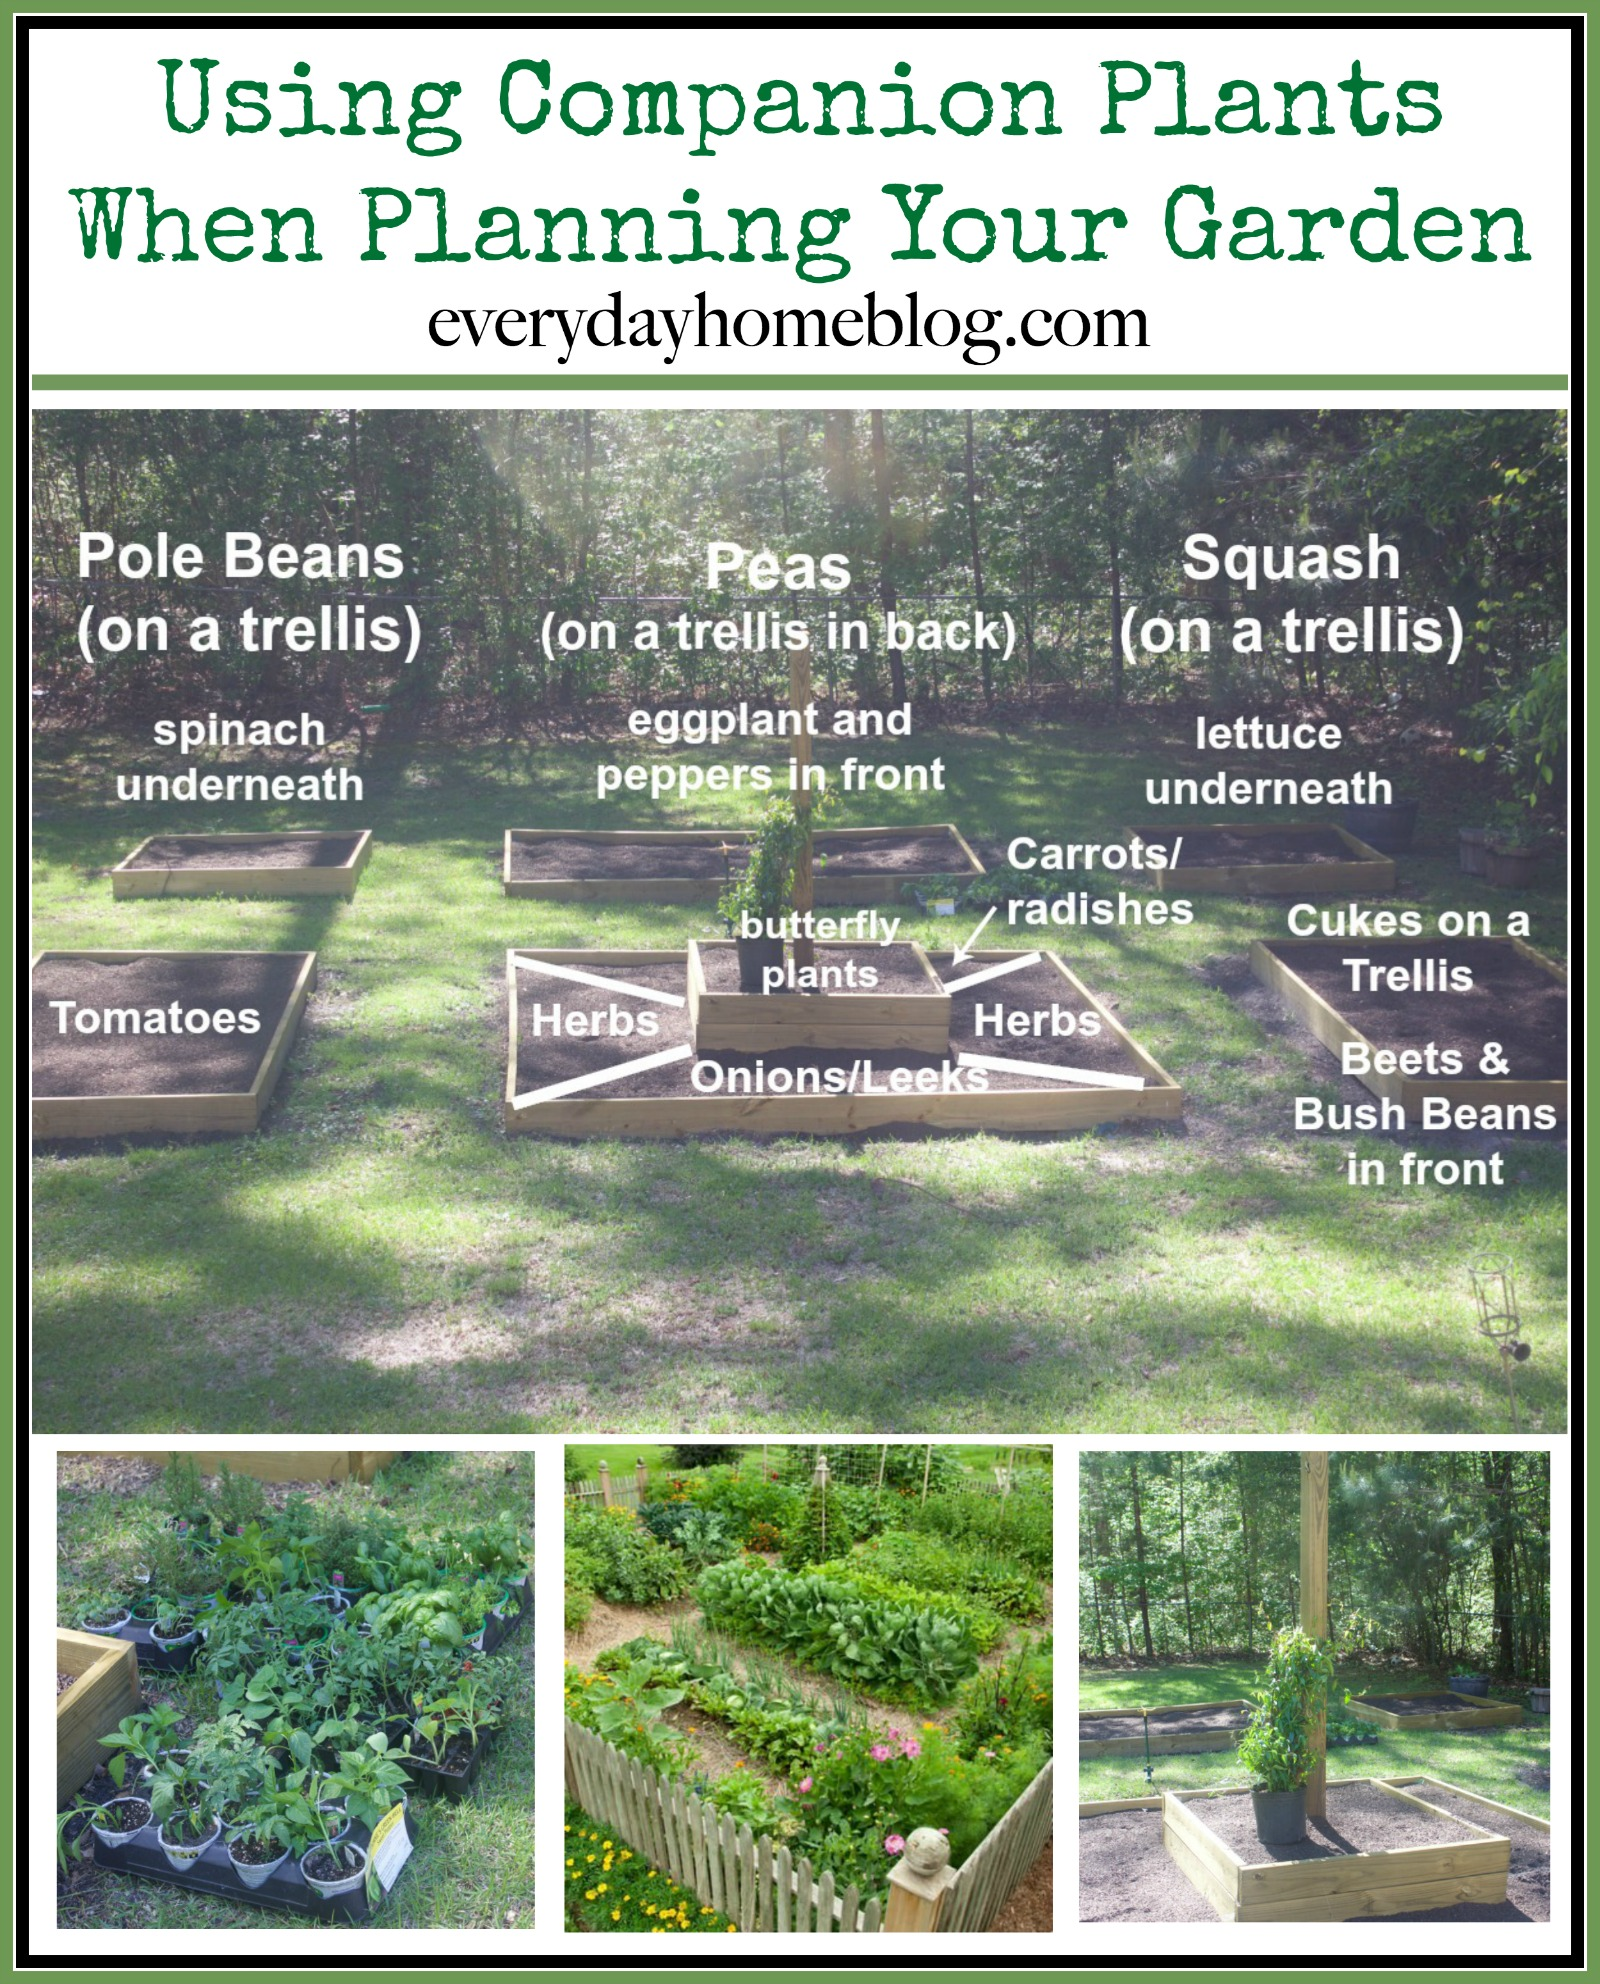 Using Companion Plants When Planning Your Garden   The Everyday Home   www.everydayhomeblog.com